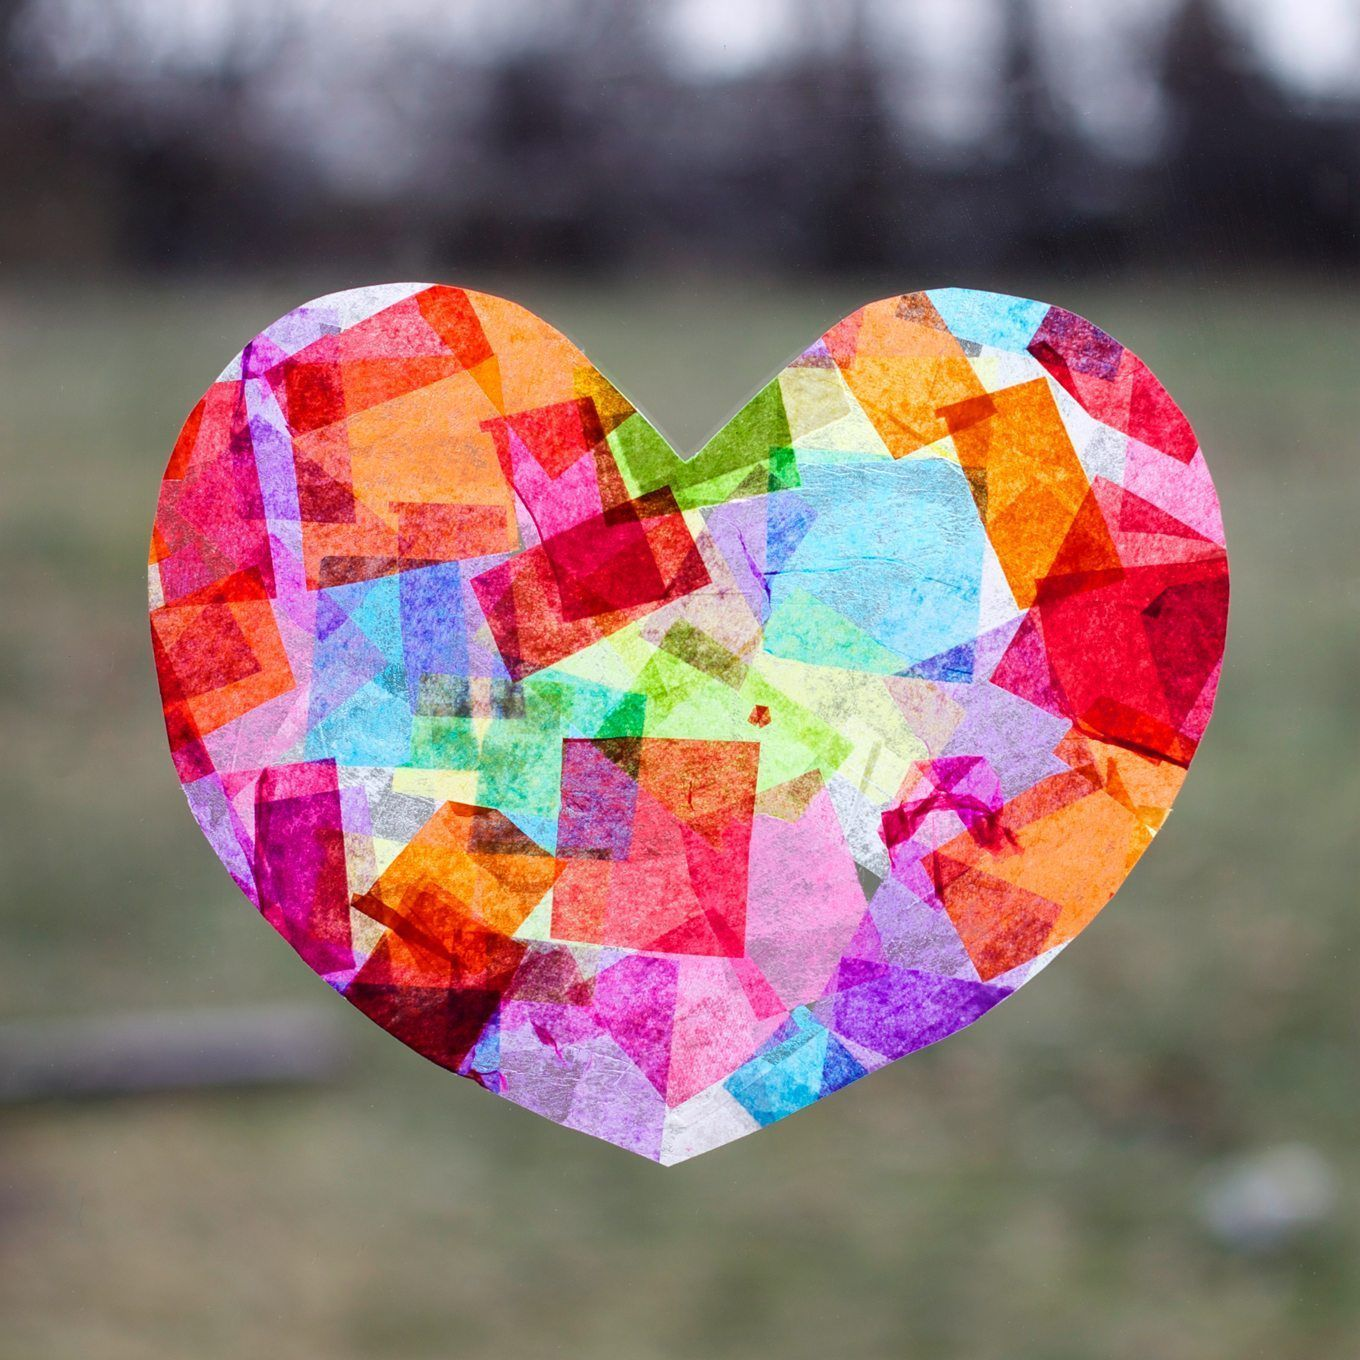 16 Valentines Day crafts for kids that are super adorable! These Valentines crafts are perfect for children! #valentinescraftsforkids #valentinesforkids #craftsforkids